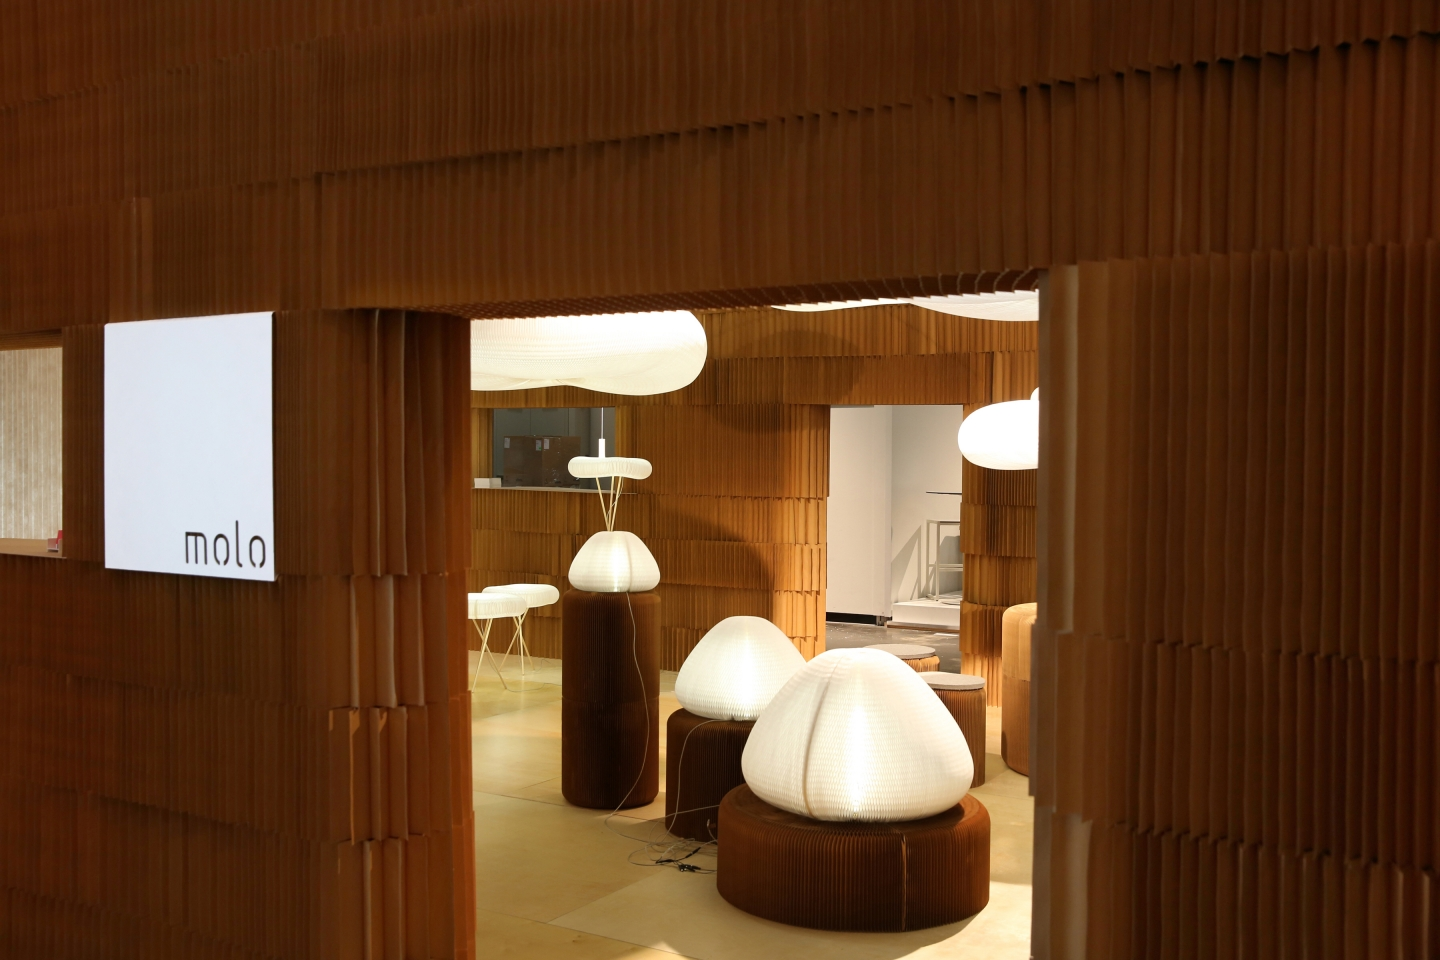 paper lighting display - Selections from molo's softlight line framed by stacked paper softblocks.